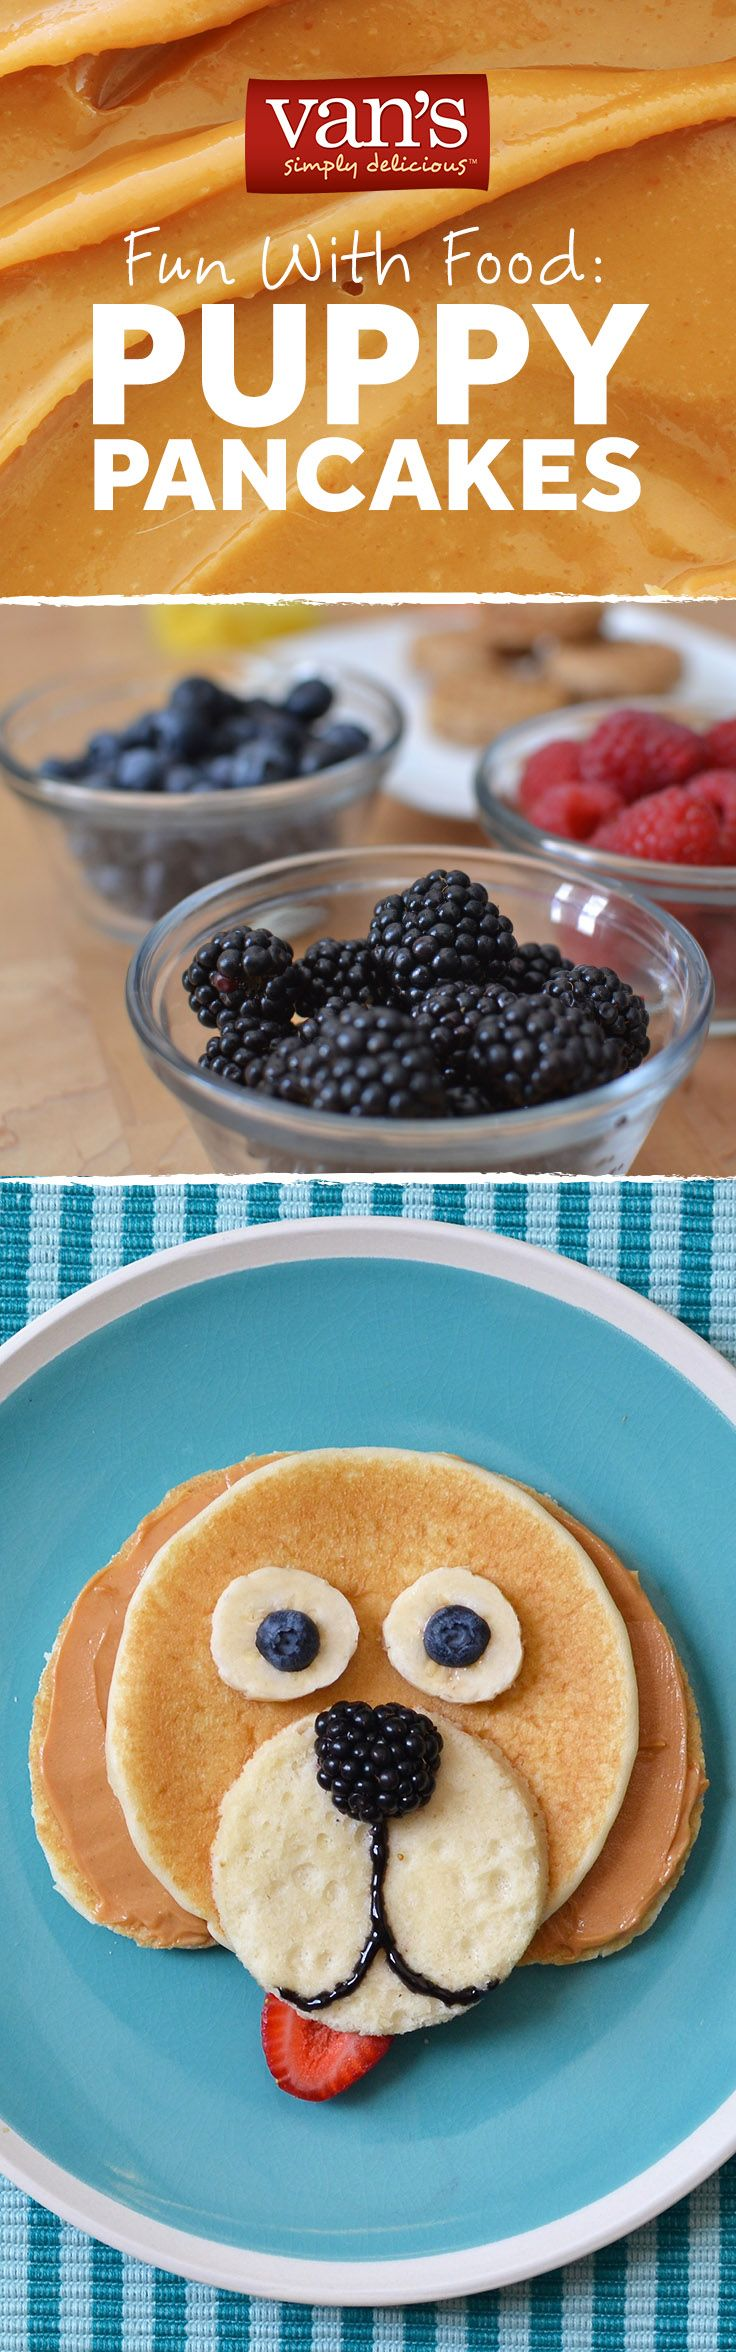 Another fun way to start the kiddos' day - make puppy pancakes with peanut butter, banana slice & blueberry eyes, a blackberry nose and a strawberry tongue.